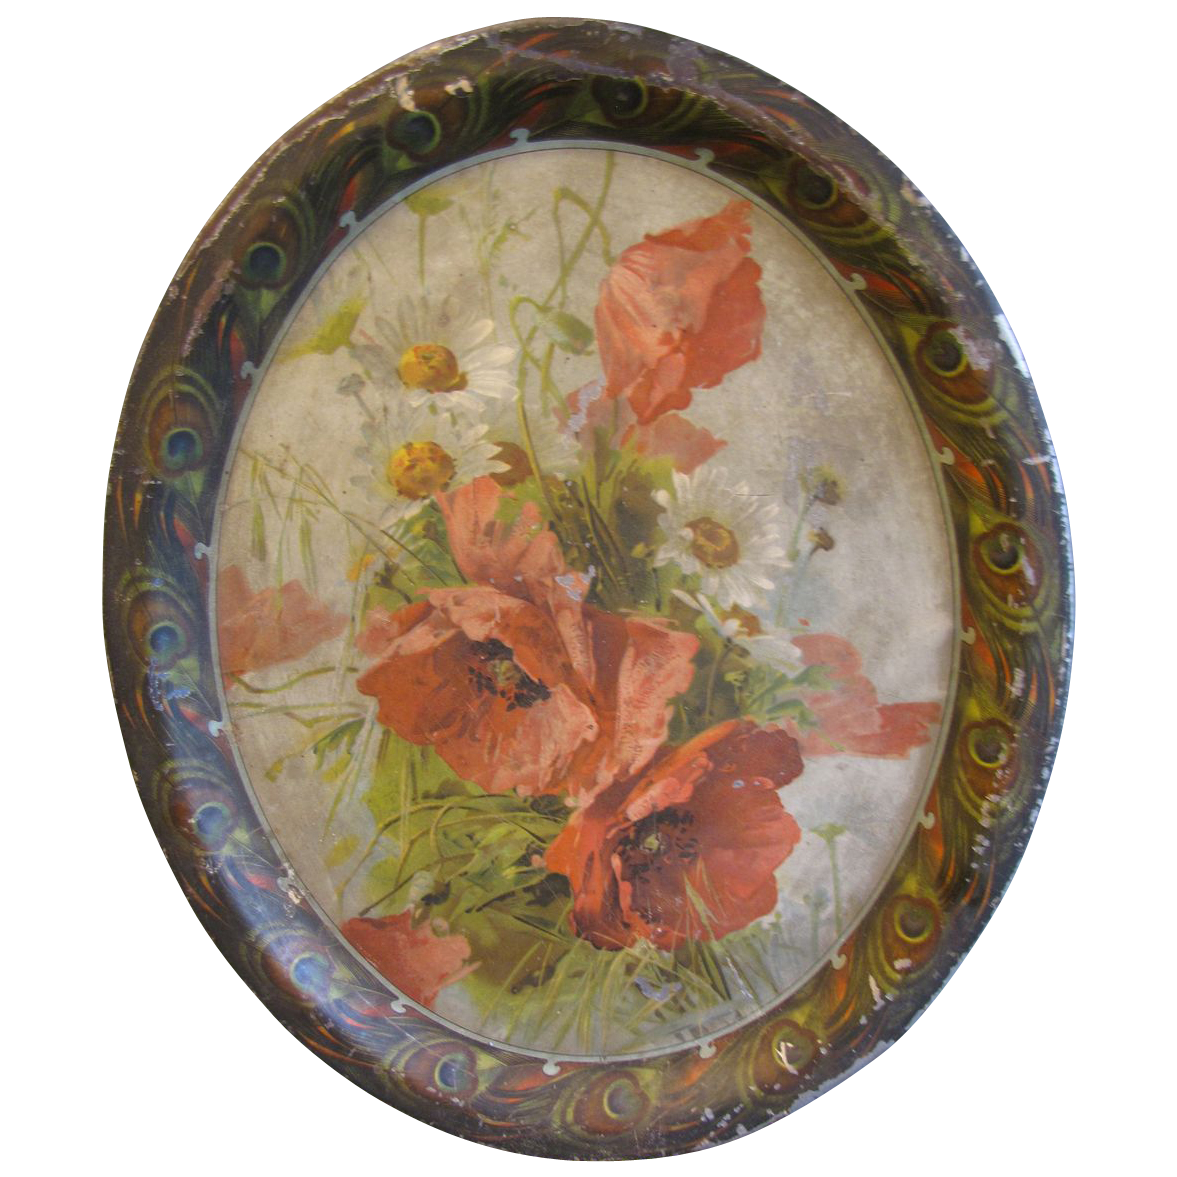 Vintage Lithograph Serving Tray, Poppies and Feathers